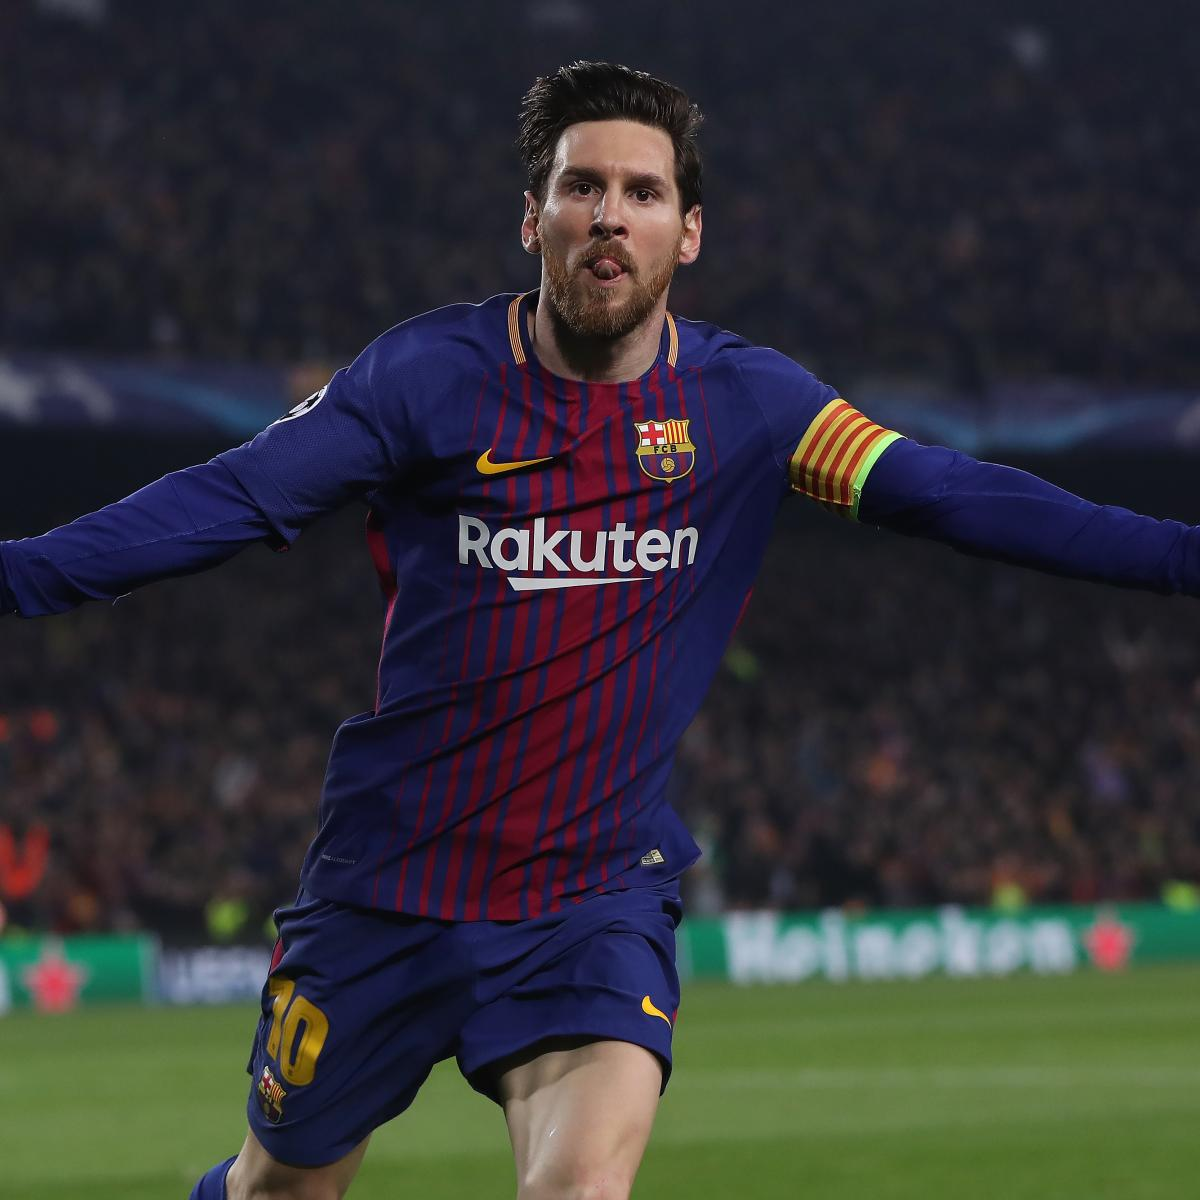 Liverpool Fc 4 0 Barcelona International Champions Cup: Lionel Messi Scores 100th Career Champions League Goal In